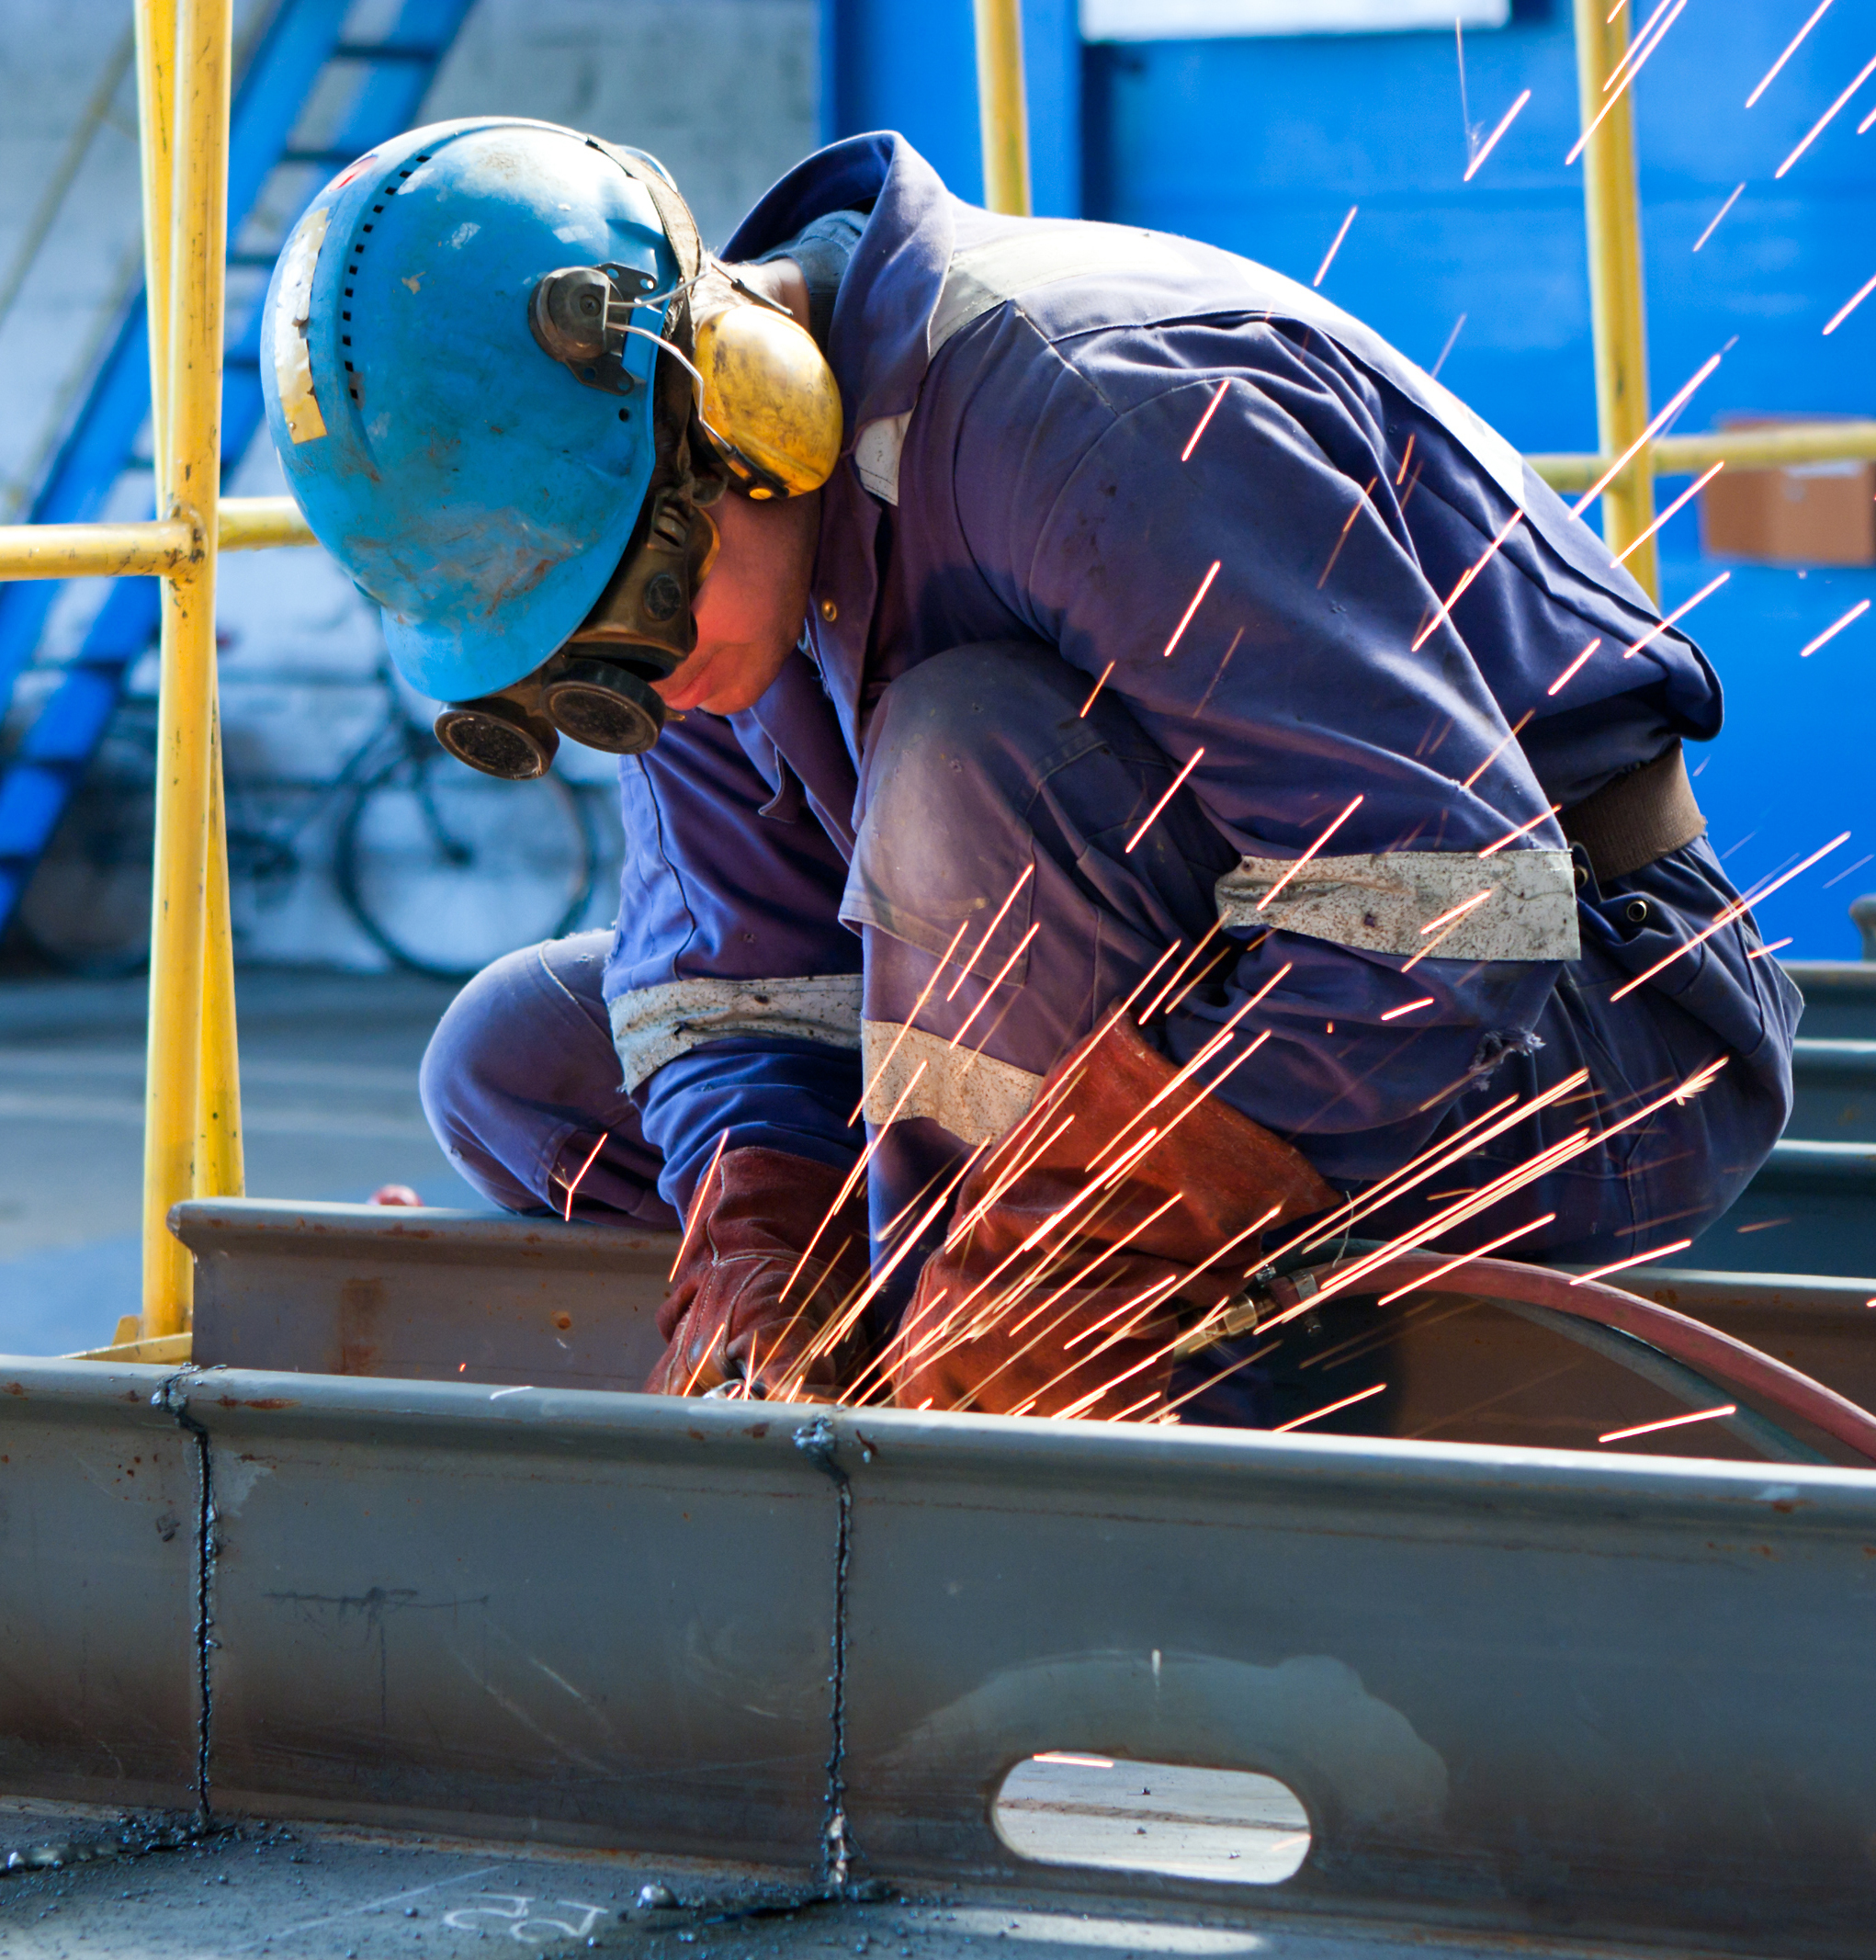 Welder with protective clothing and ecooline